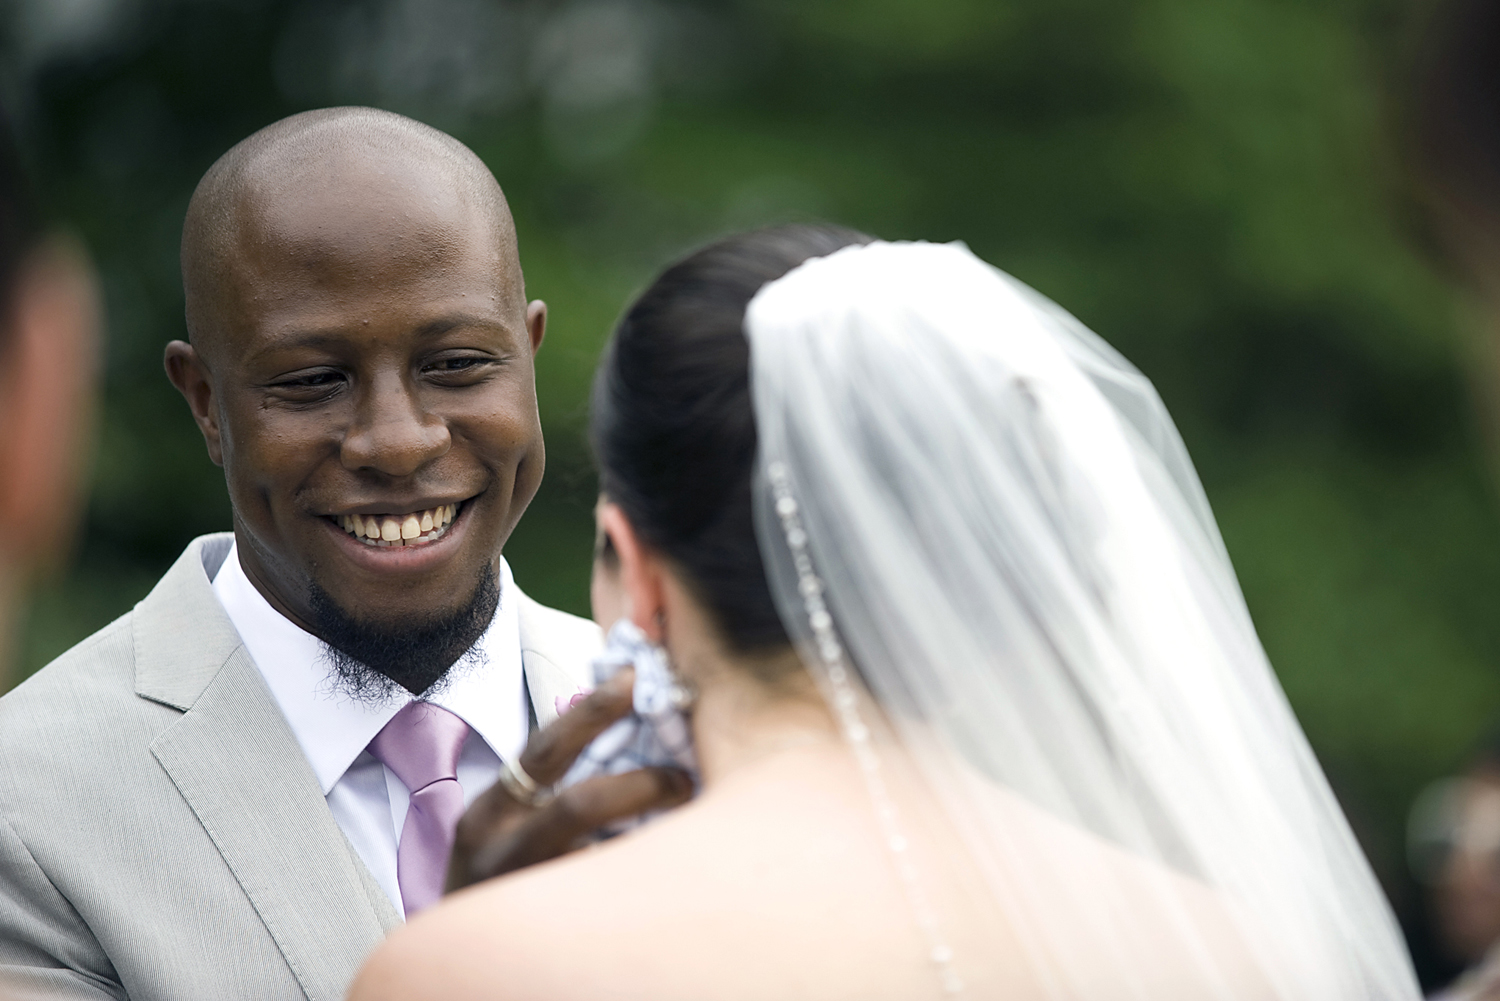 groom wipes away tear as bride cries during wedding ceremony at The Water Witch Club at Monmouth Hills. Jersey Shore wedding photographers